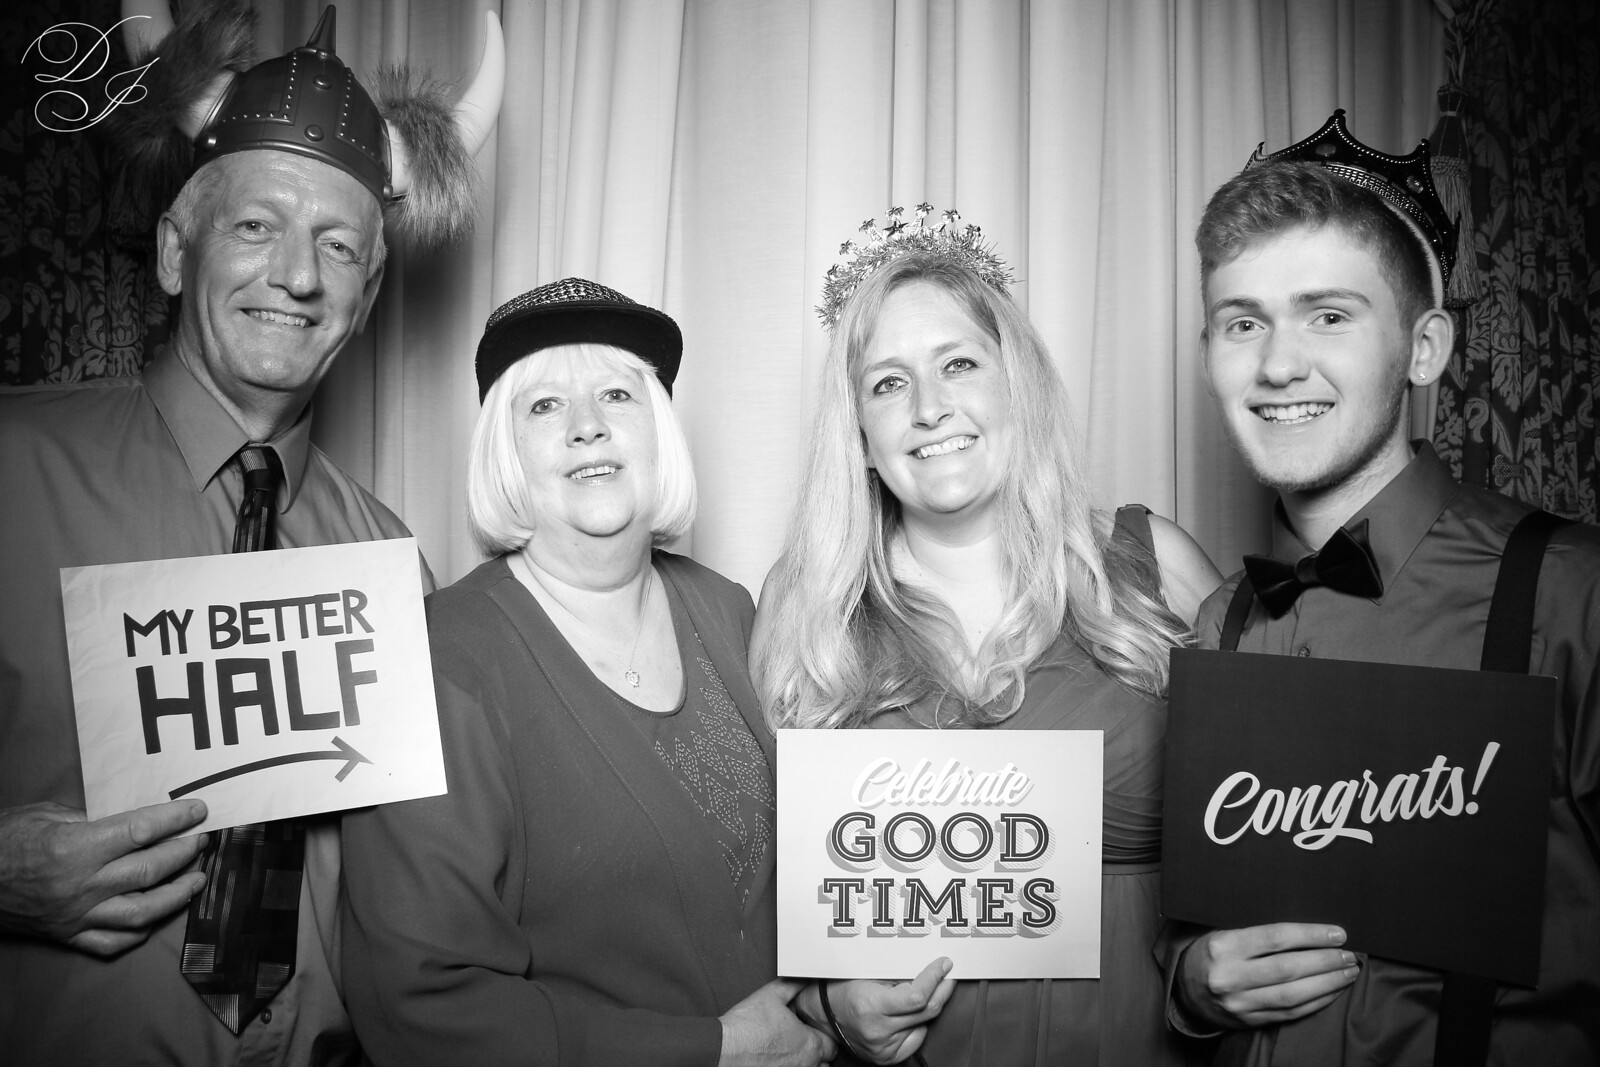 Chicago_Vintage_Wedding_Photobooth_Union_League_Club_11.jpg